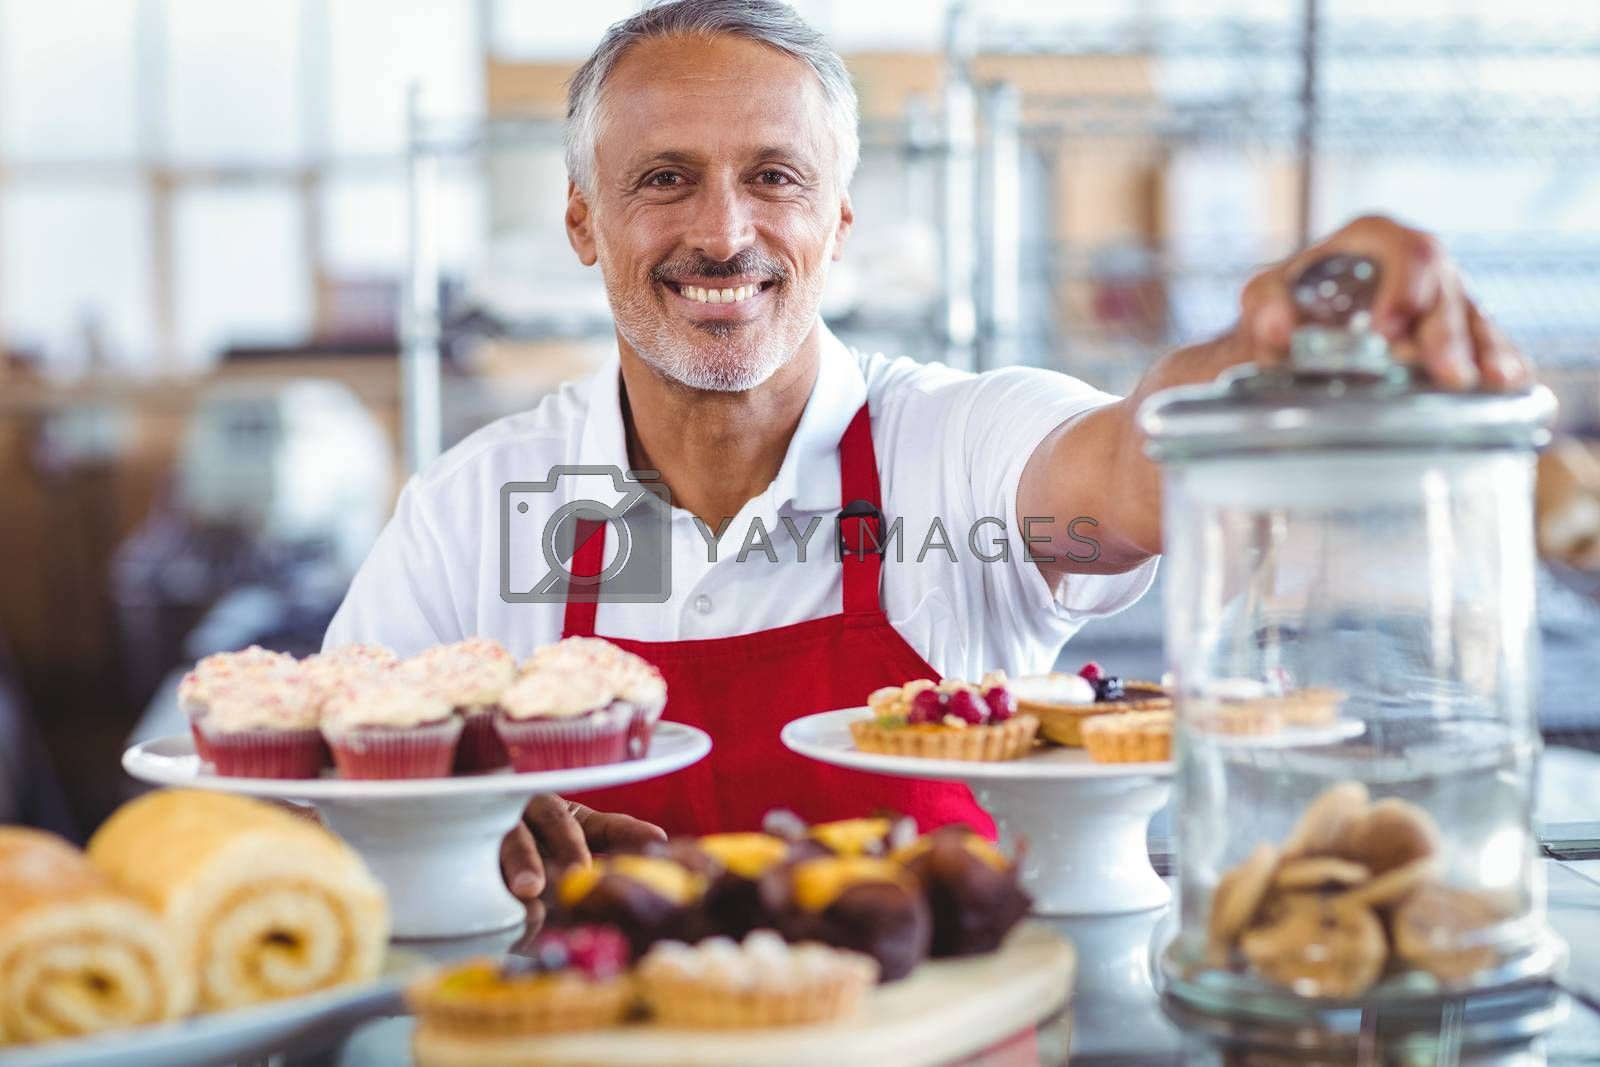 Royalty free image of Happy barista smiling at camera behind plates of cakes by Wavebreakmedia